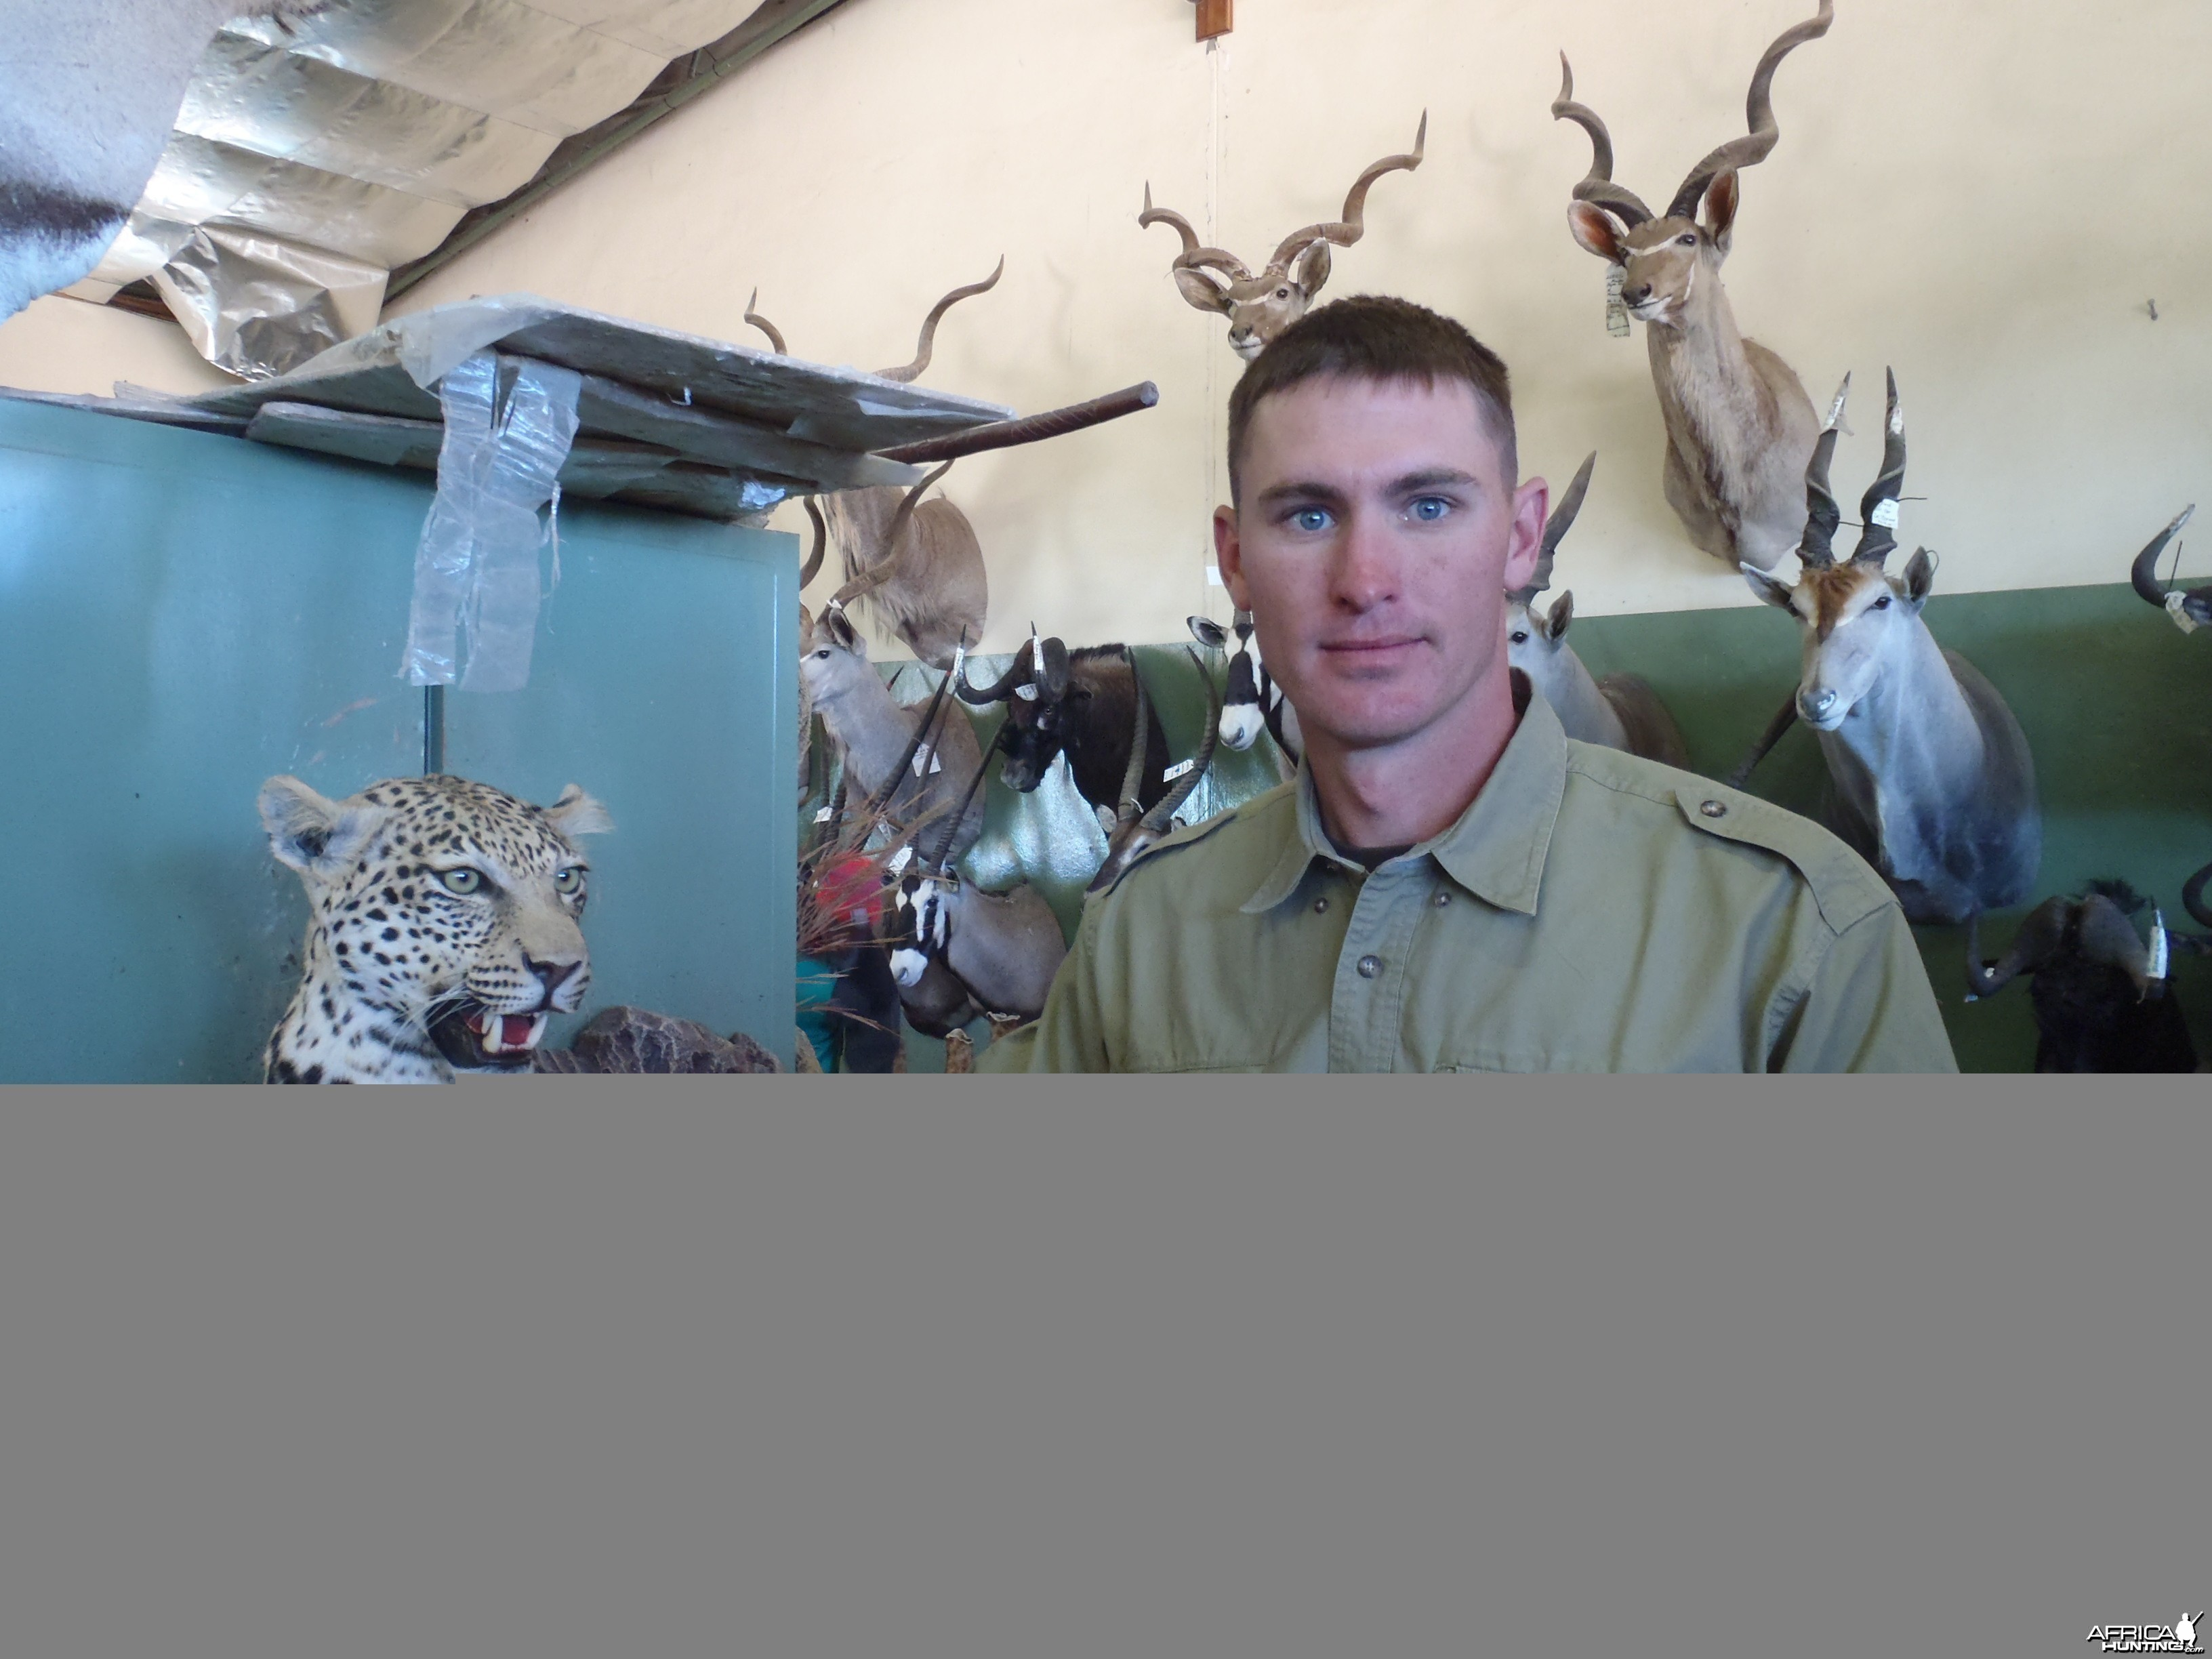 At the taxidermist in Namibia